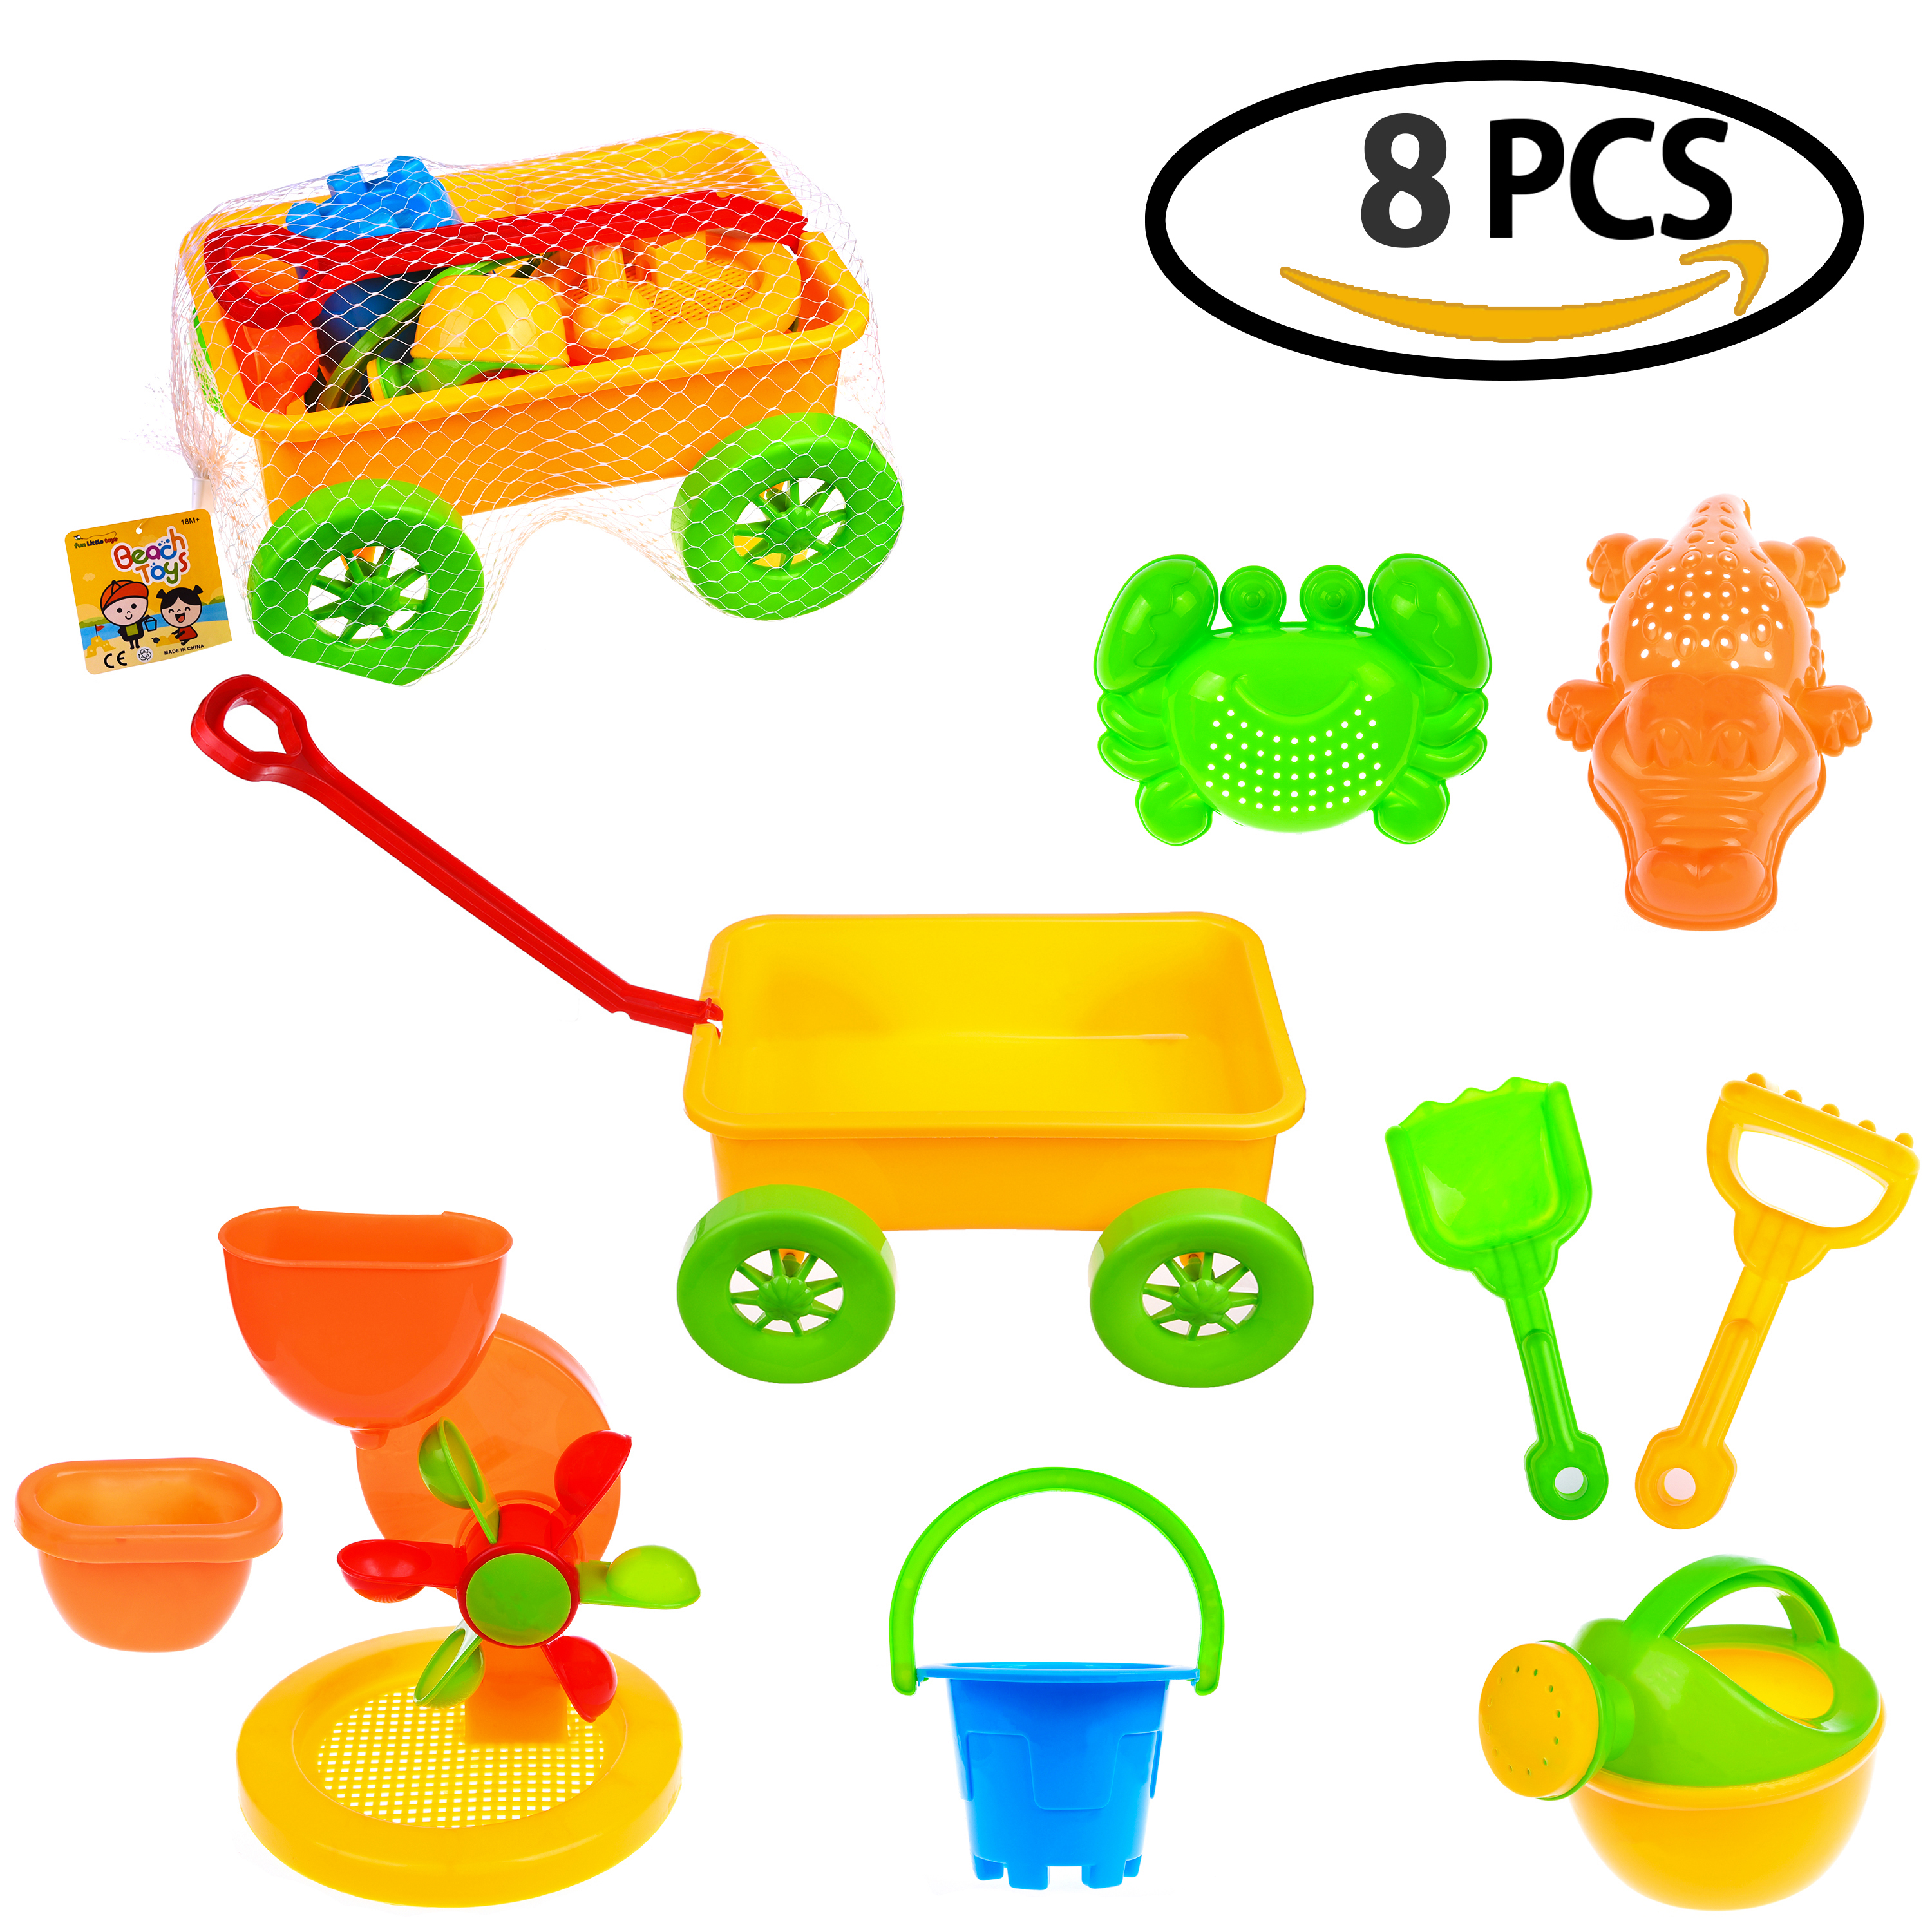 Summer Beach Sand Toy Set for Kids with Reusable Mesh Bag Castle Bucket Sand Mold (8 Pieces) F-133 by